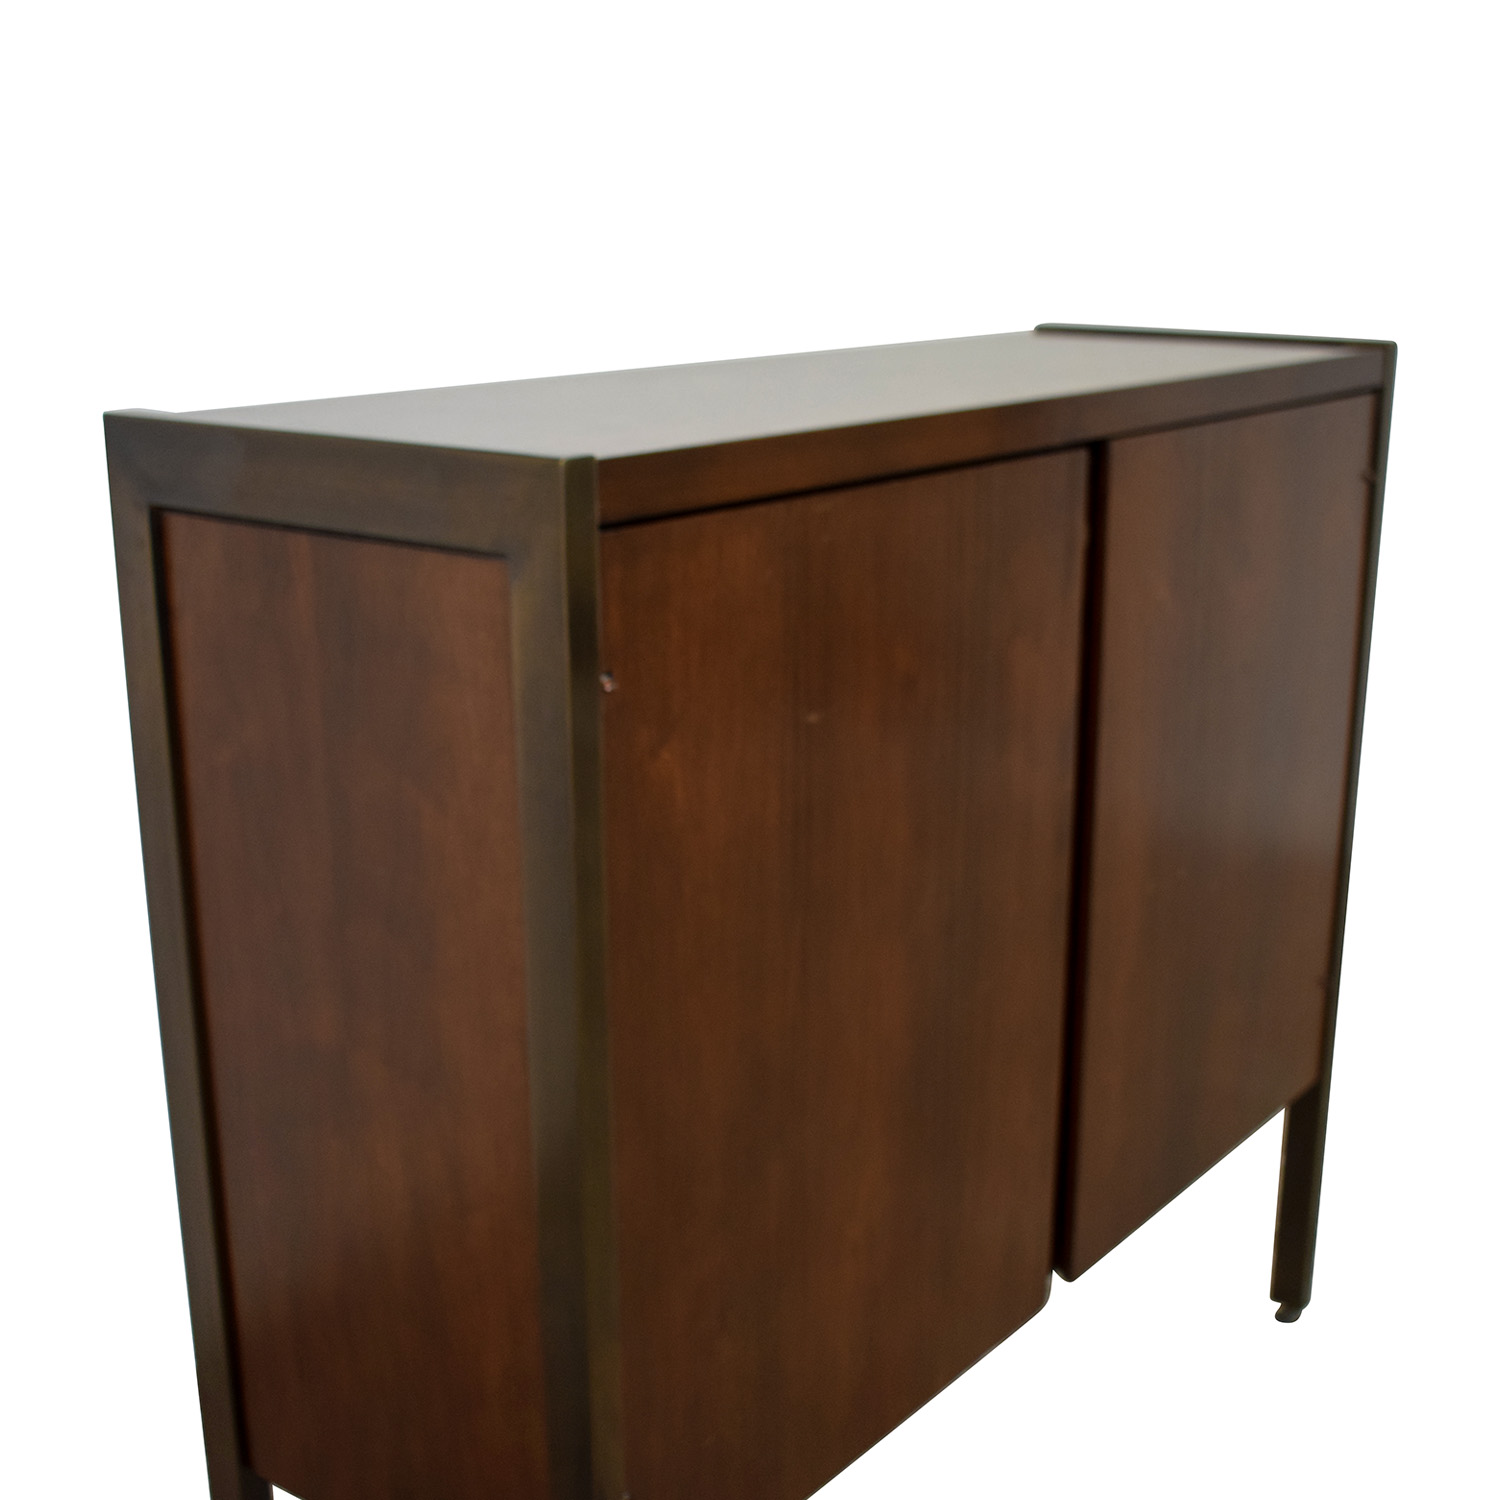 Walnut Cabinet with Shelves dimensions